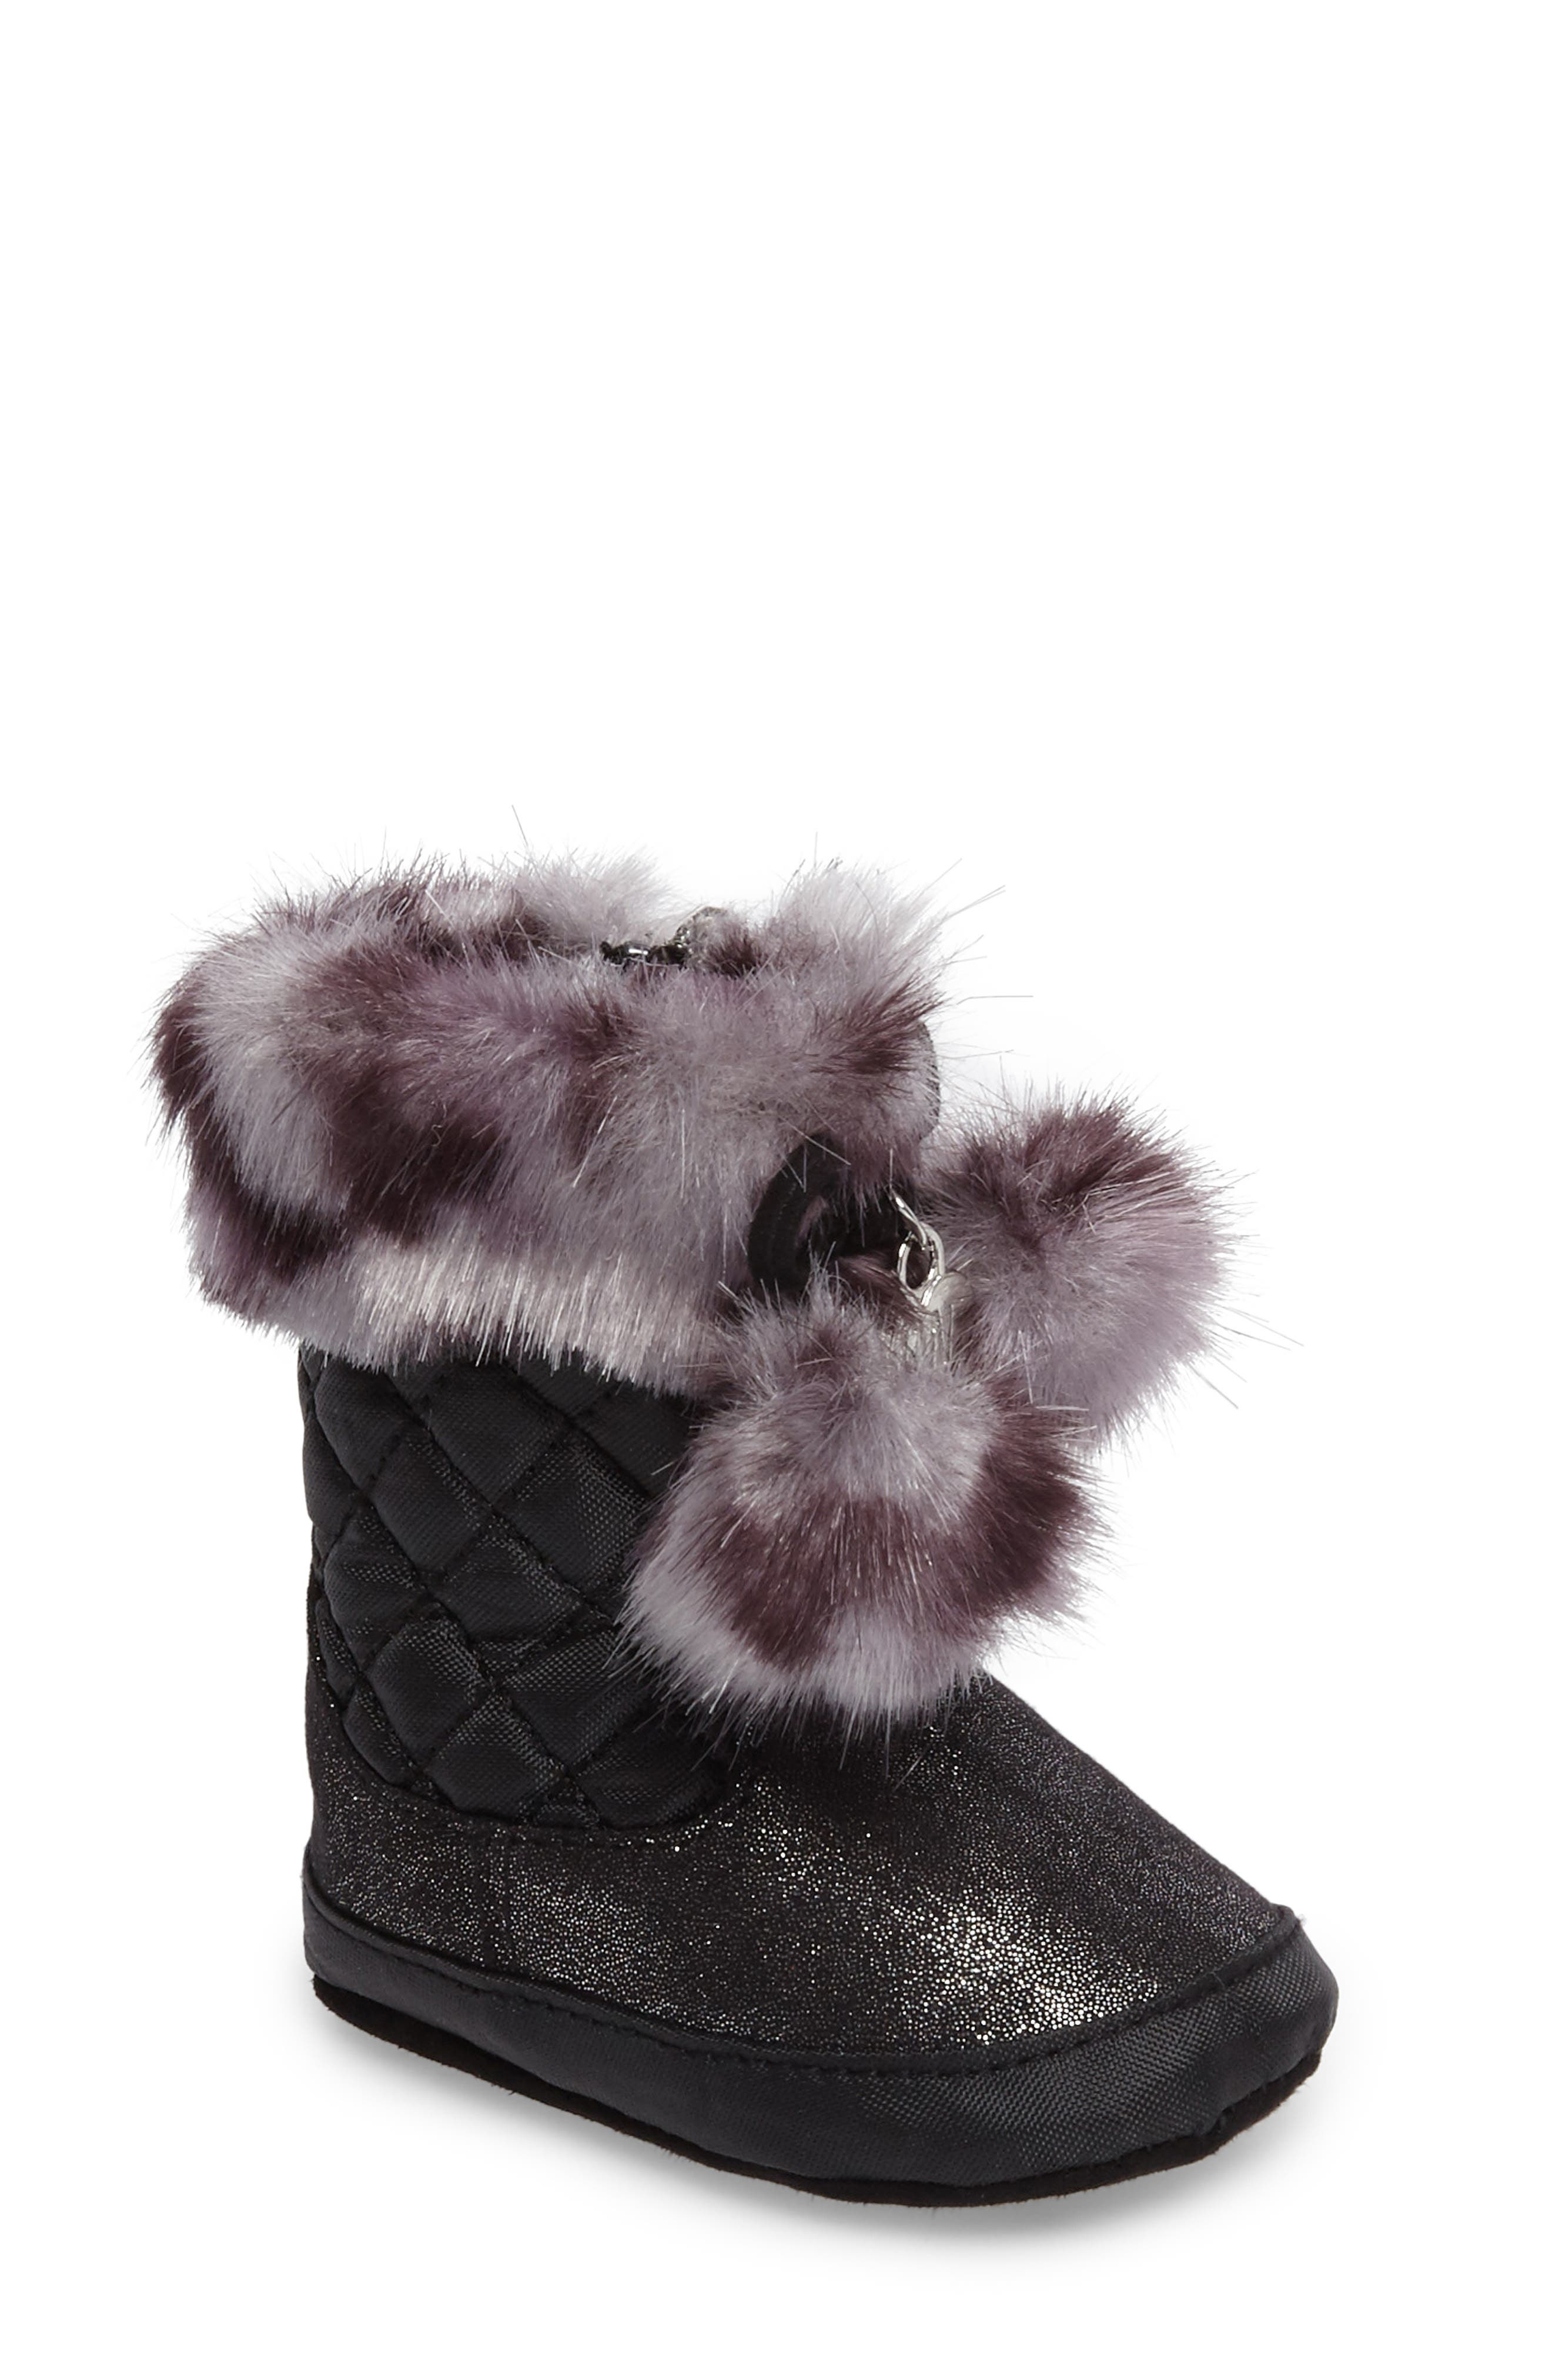 Alternate Image 1 Selected - Stuart Weitzman Baby Sparkle Faux Fur Crib Bootie (Baby)